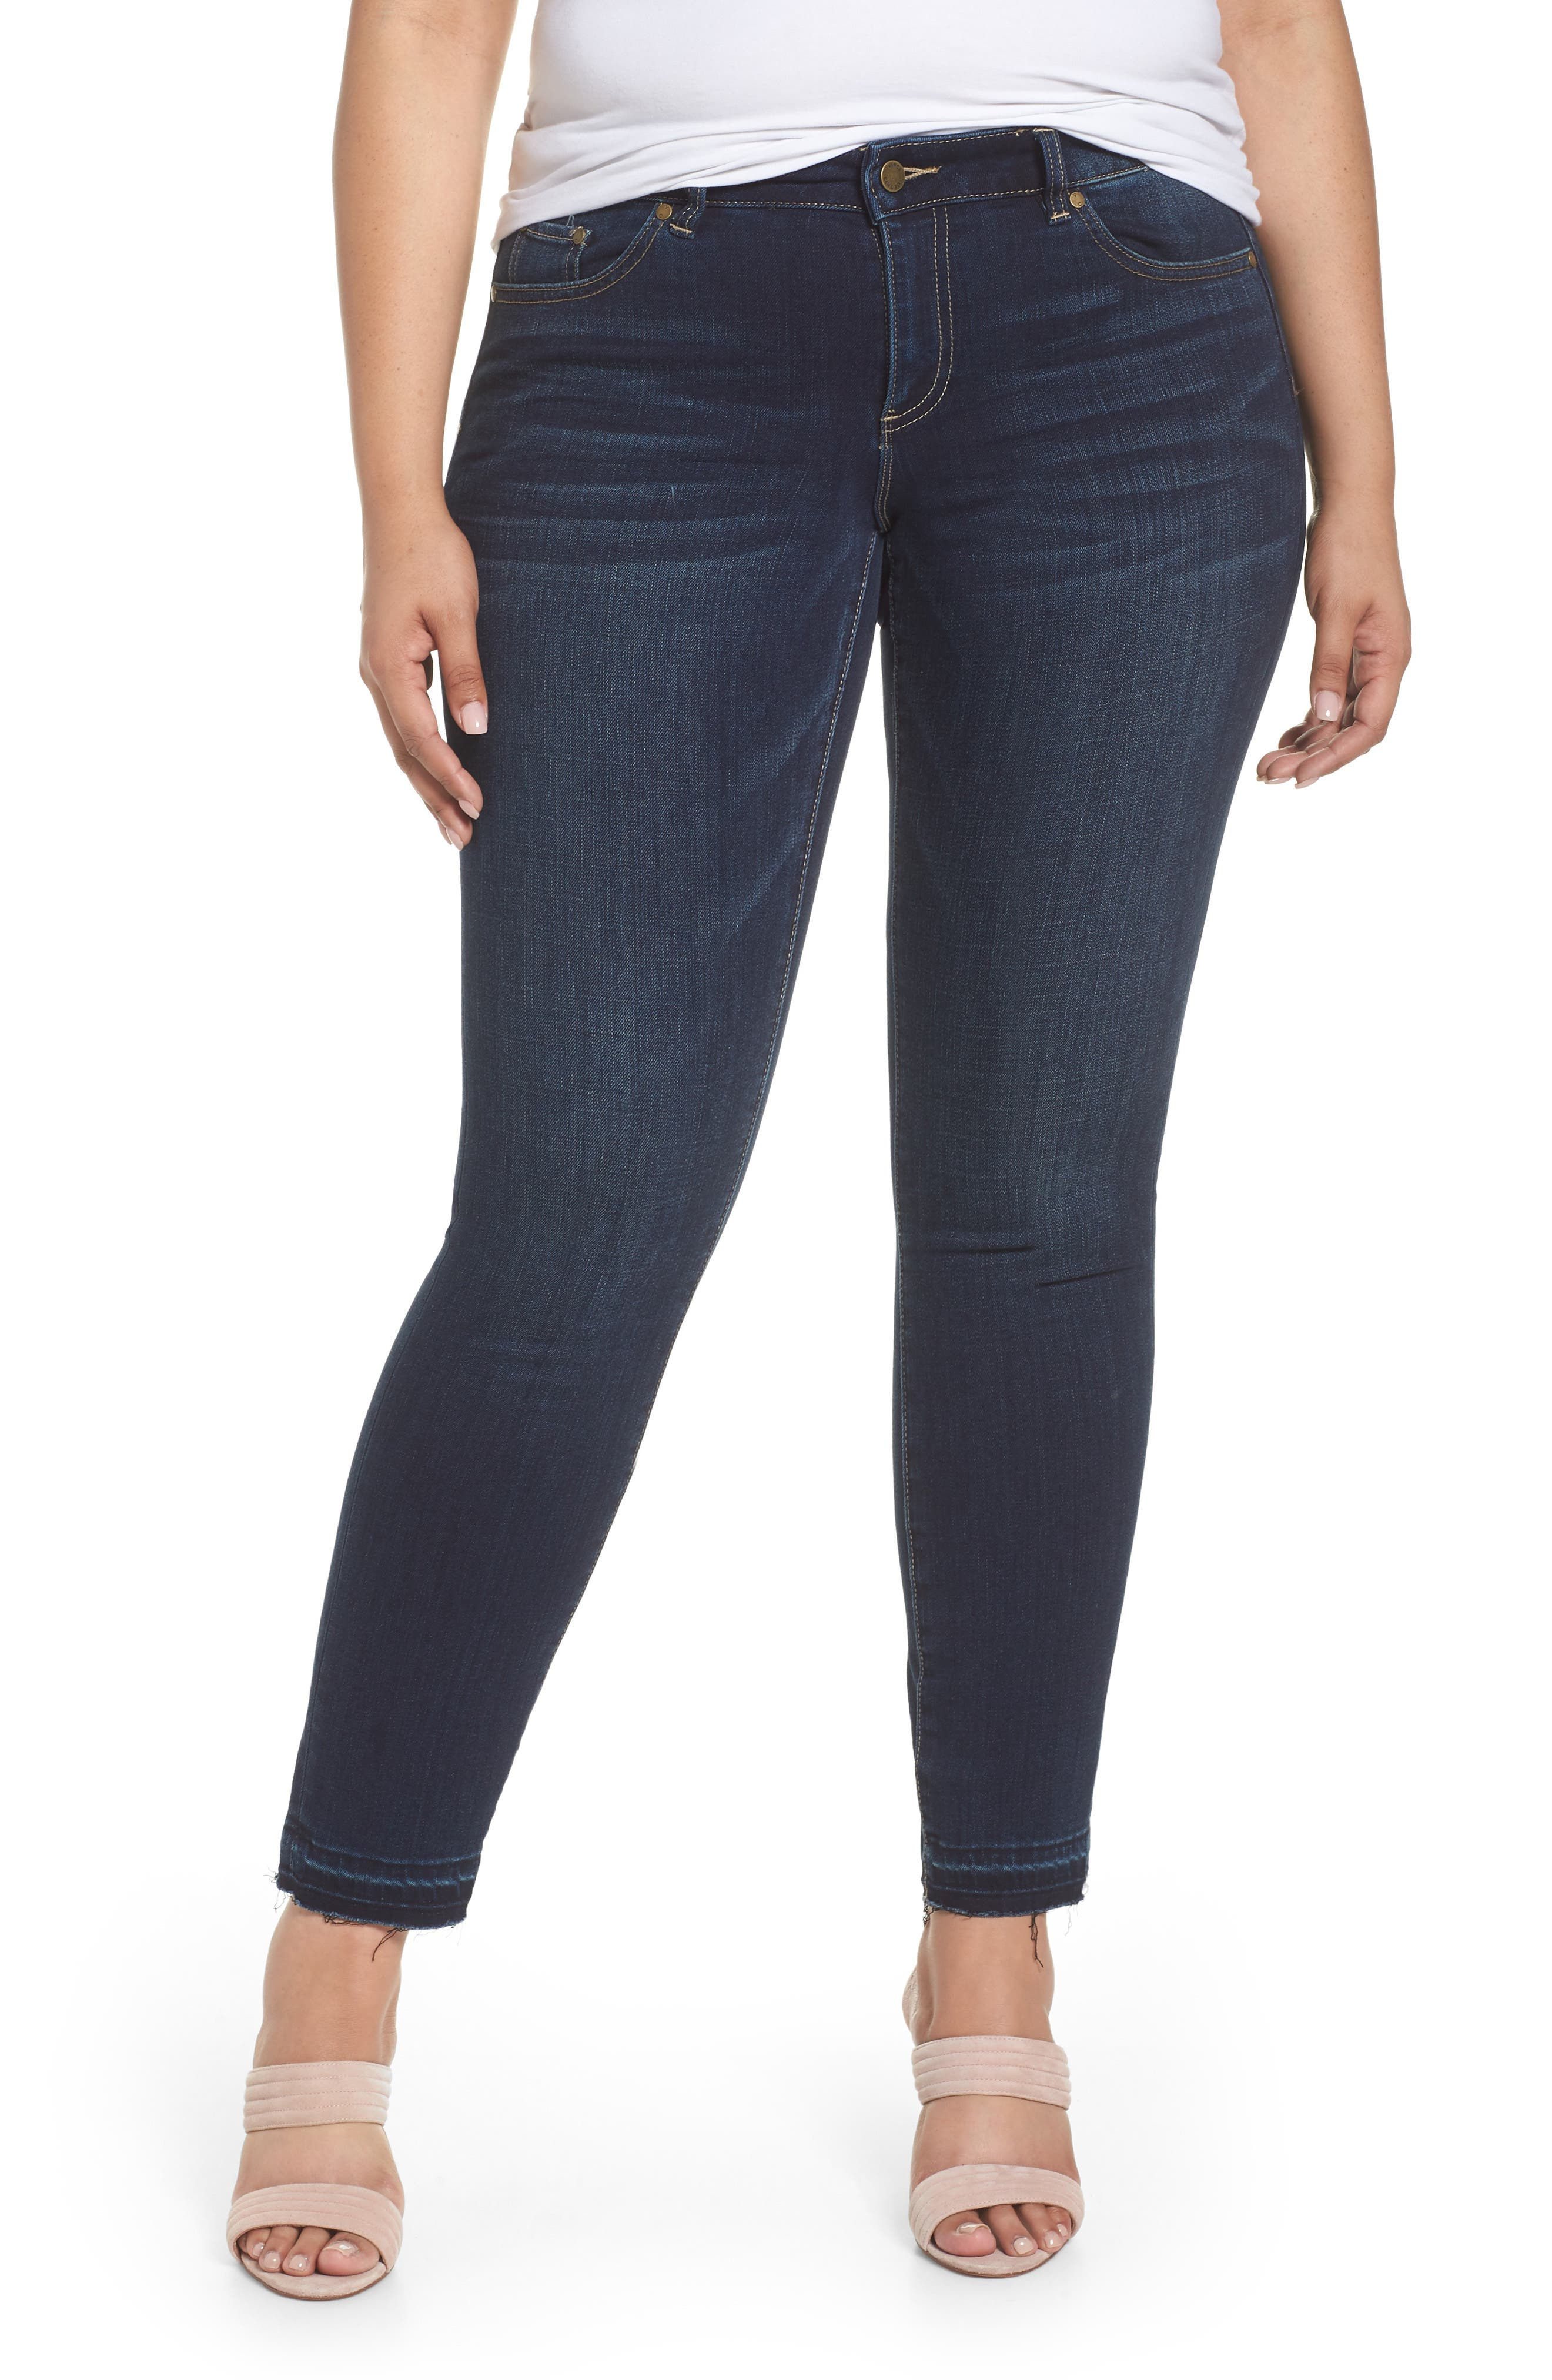 Vince Camuto Release Hem Ankle Jeans (Plus Size)